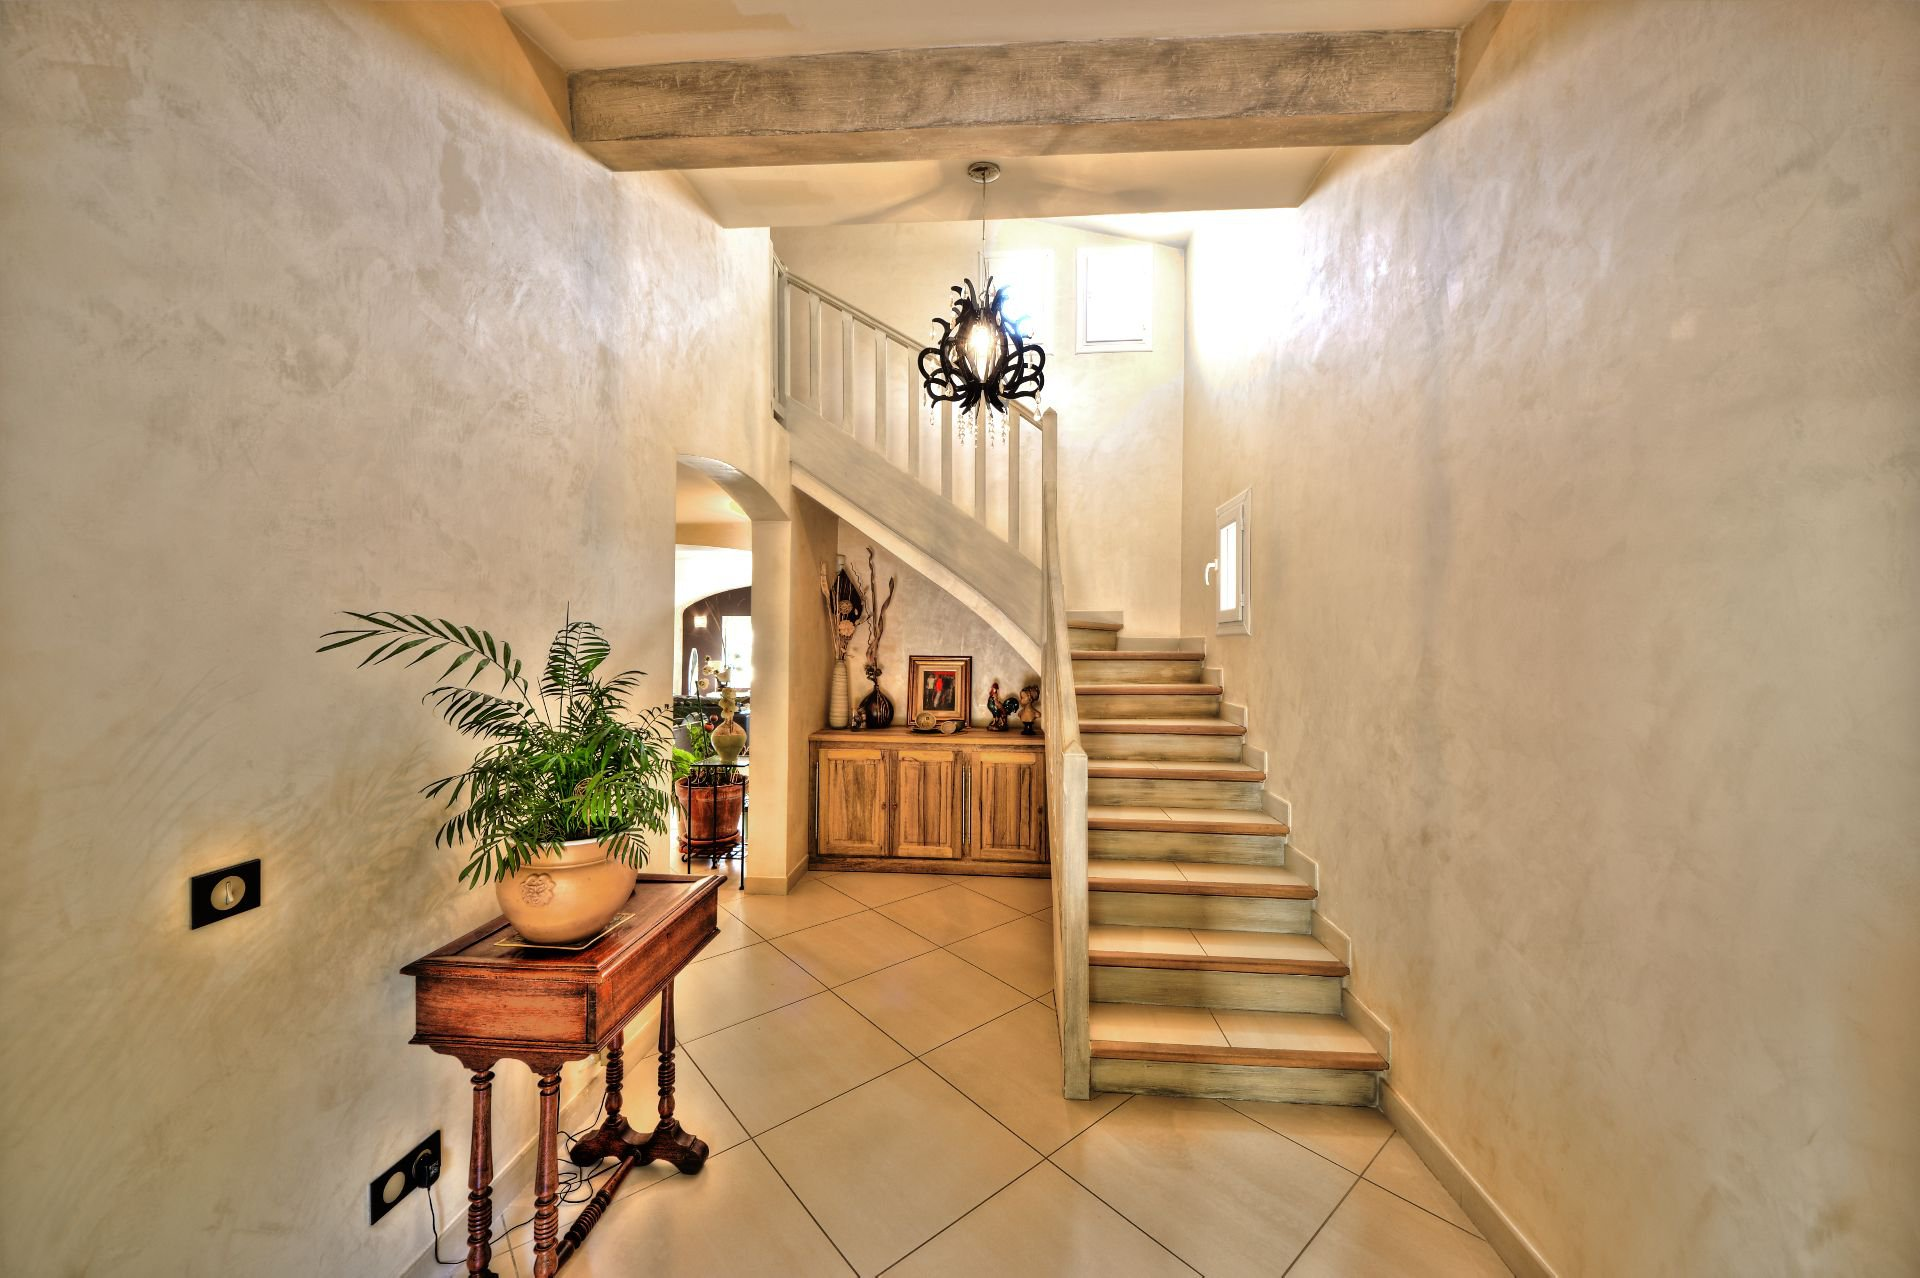 Access stairs 1st floor living room 200 sqm, 4 bedrooms, outbuilding on 8000 m² agricultural area, Ampus, Var, Provence, Paca